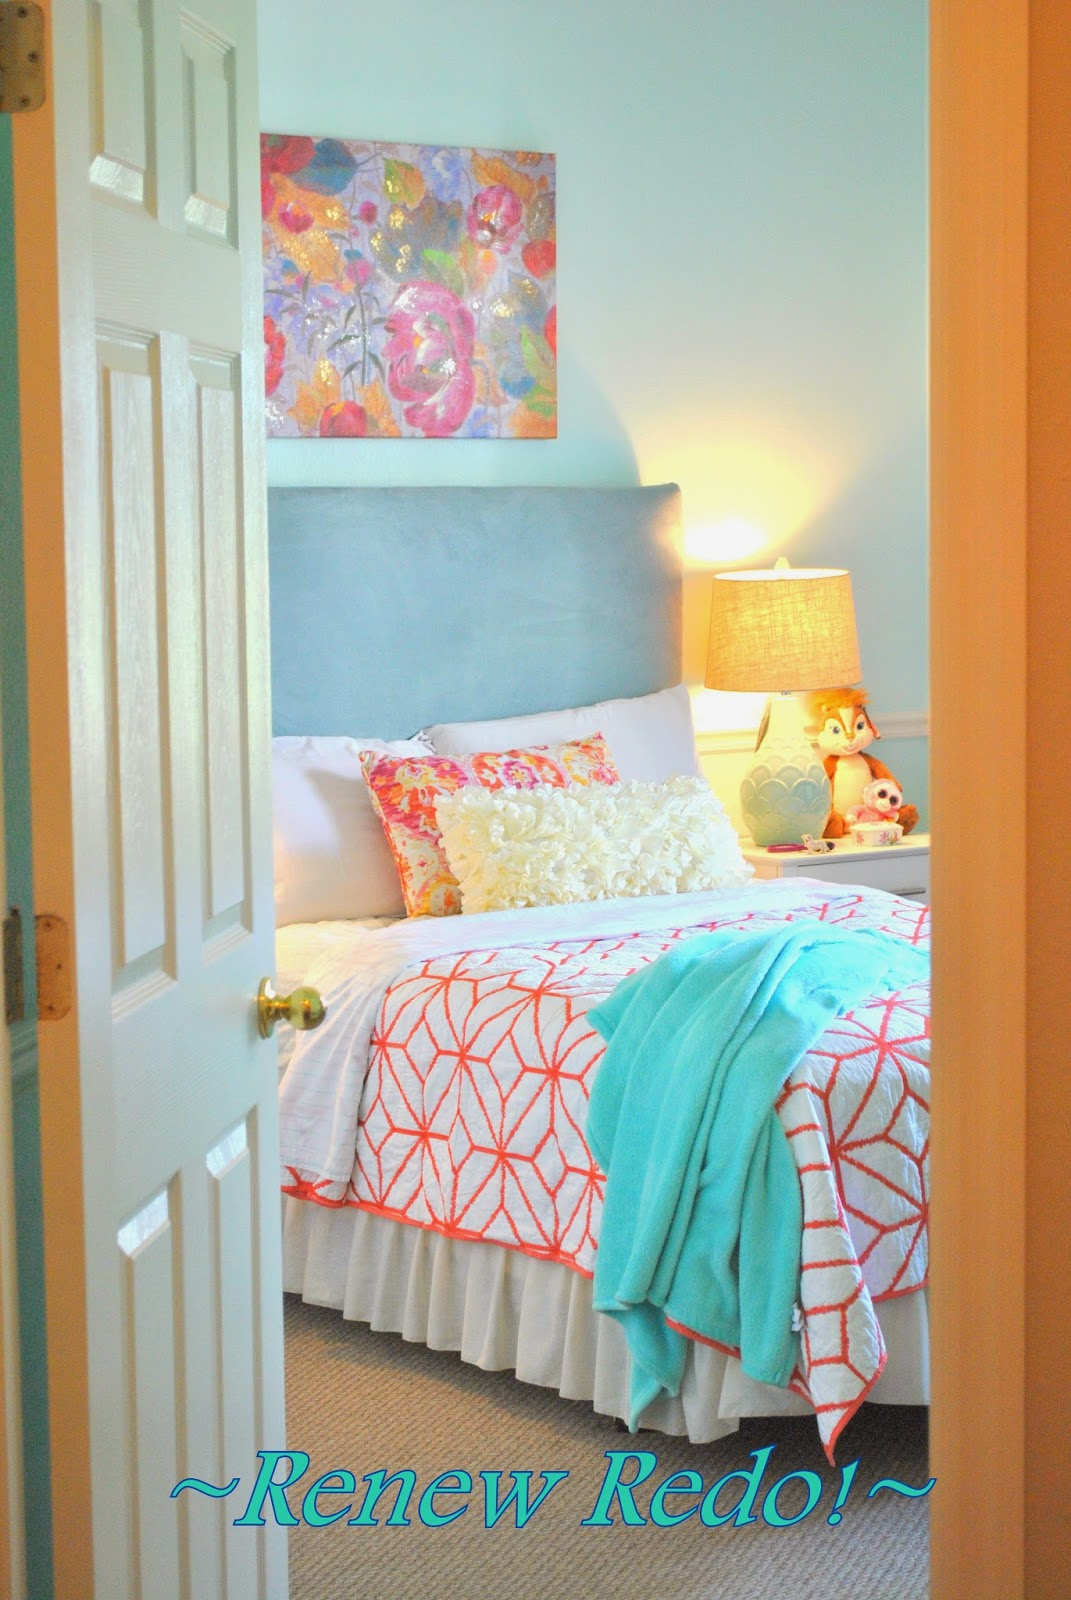 ReNew ReDo!: Girls Room Makeover ~ Before and Afters ...